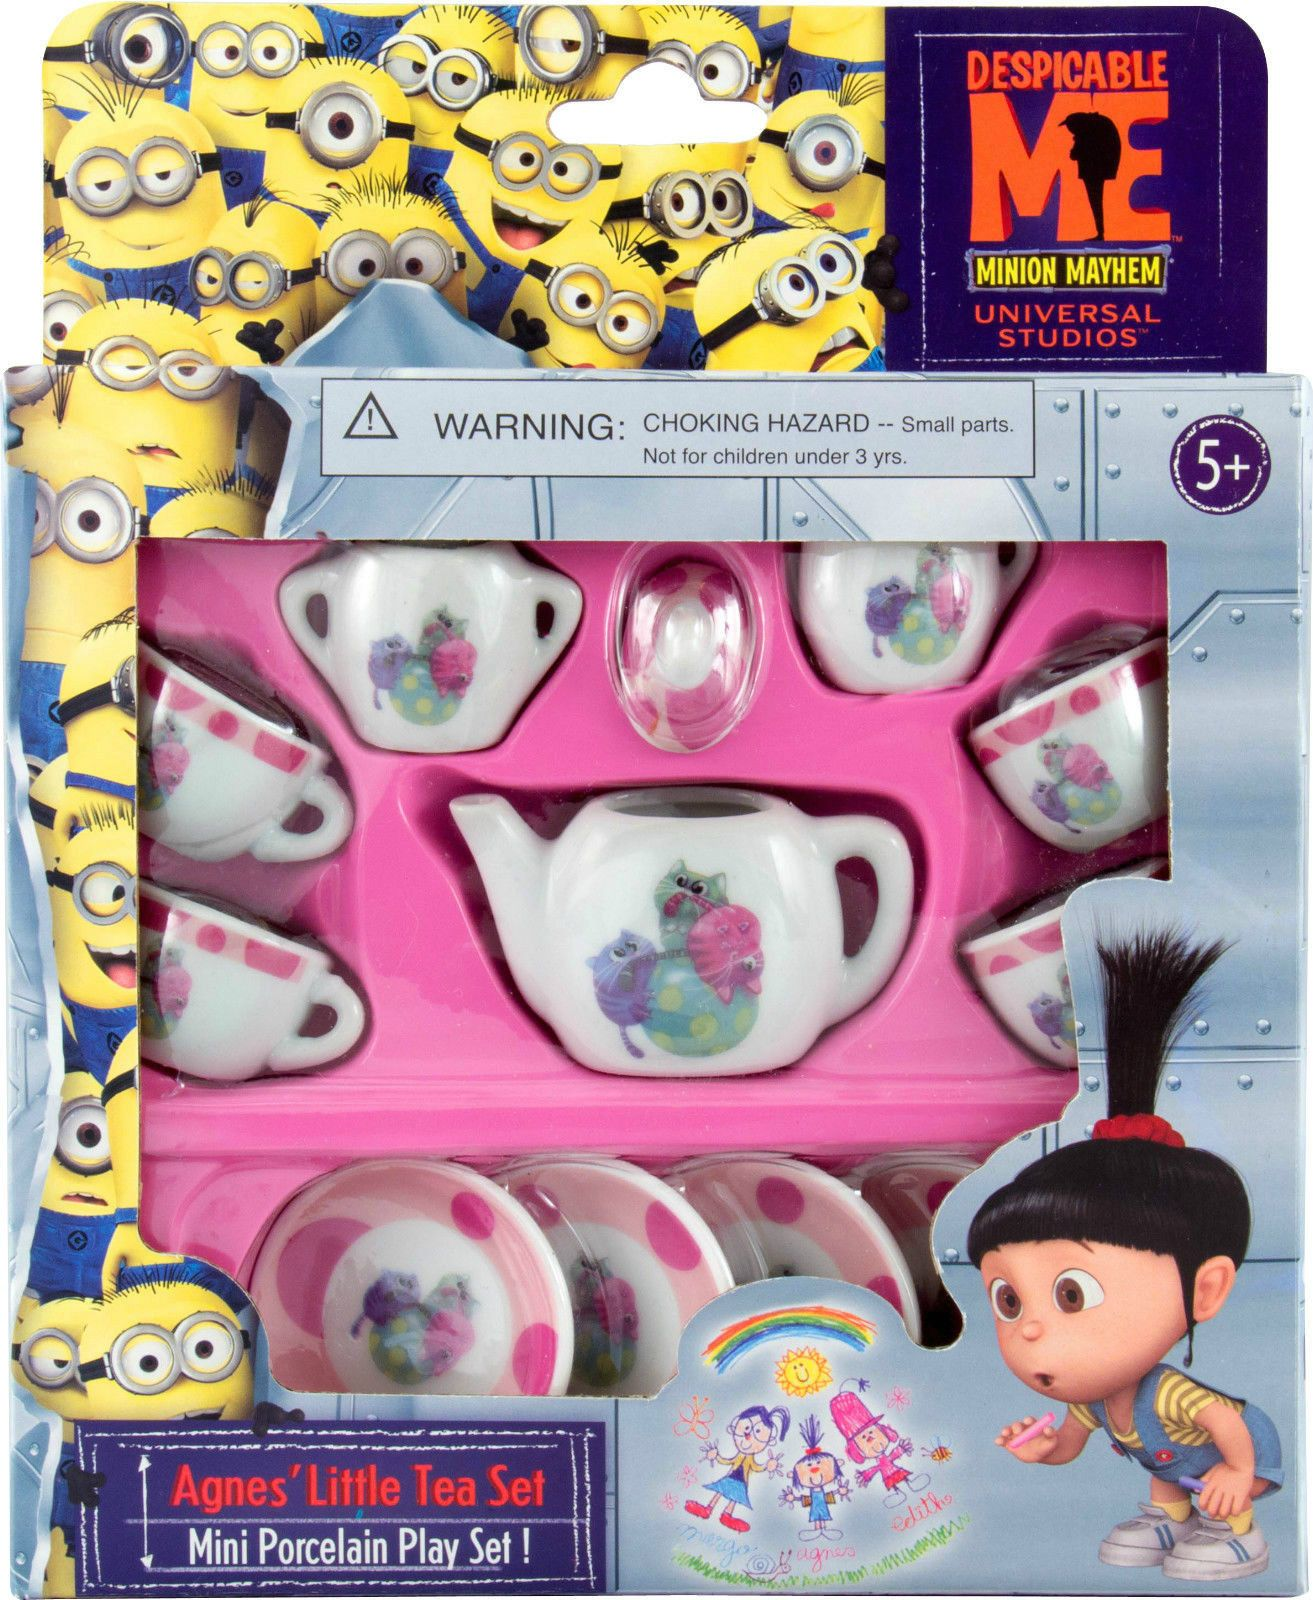 Despicable Me Agnes Little Tea Set Kittens Miniature Porcelain